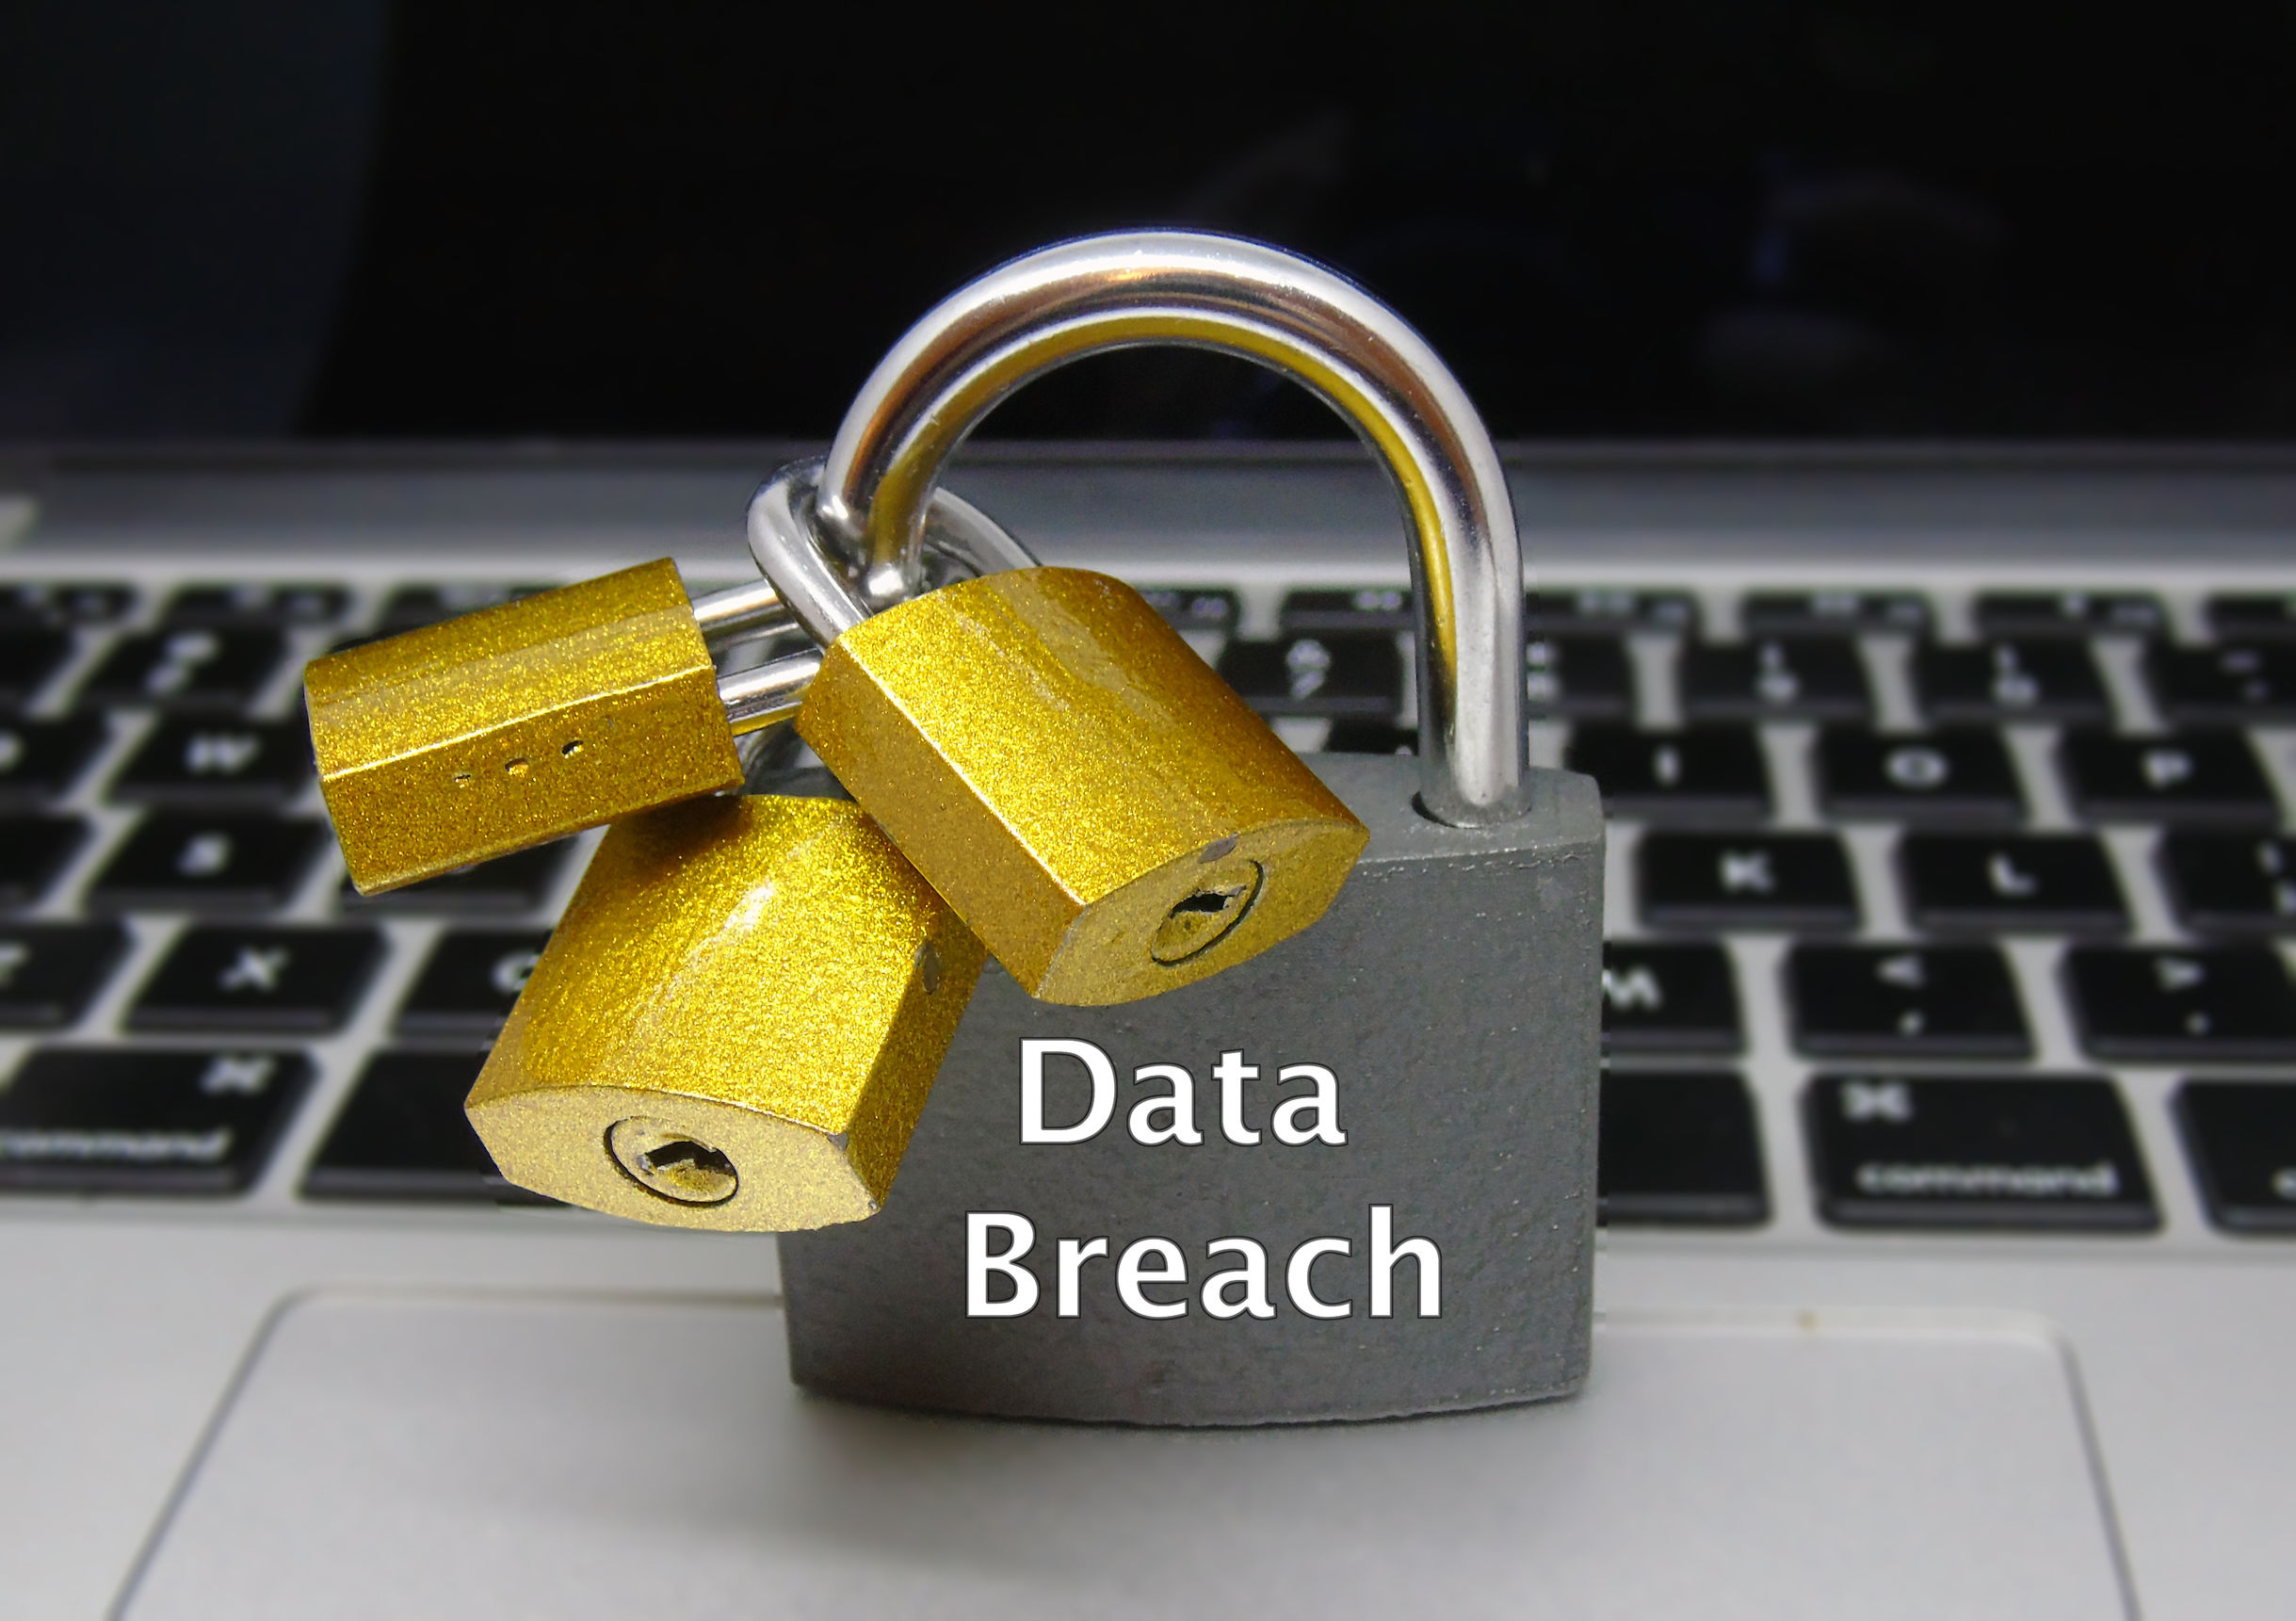 Court action: a strategic option for data security breach response – a UK perspective